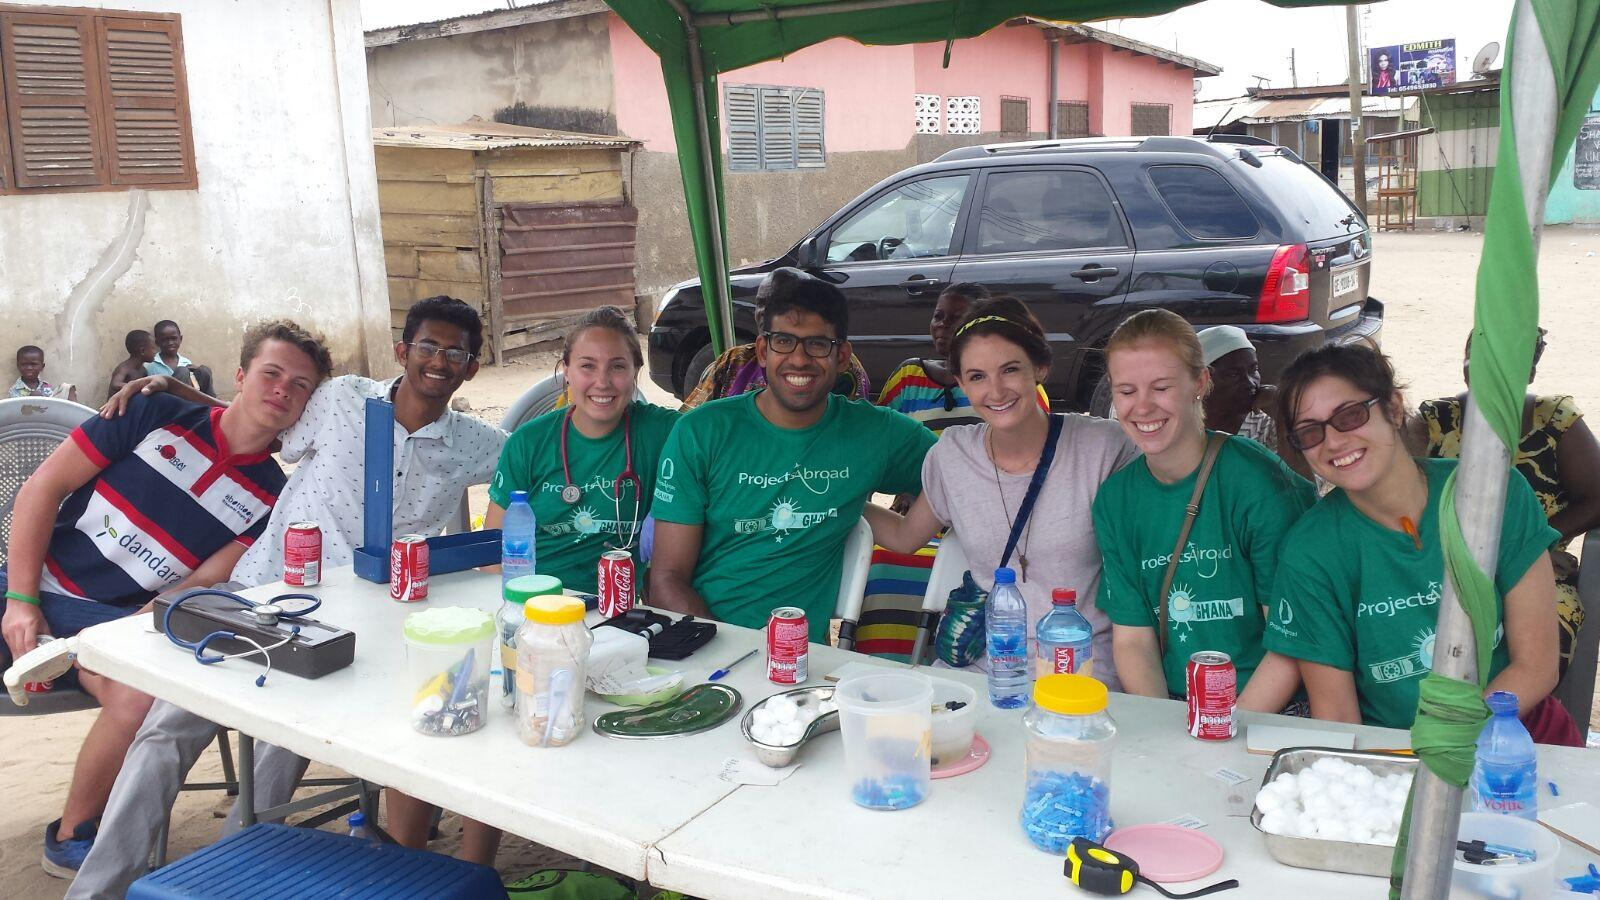 A group of interns from Projects Abroad are pictured being briefed on their tasks whilst on a public health internship in Ghana.